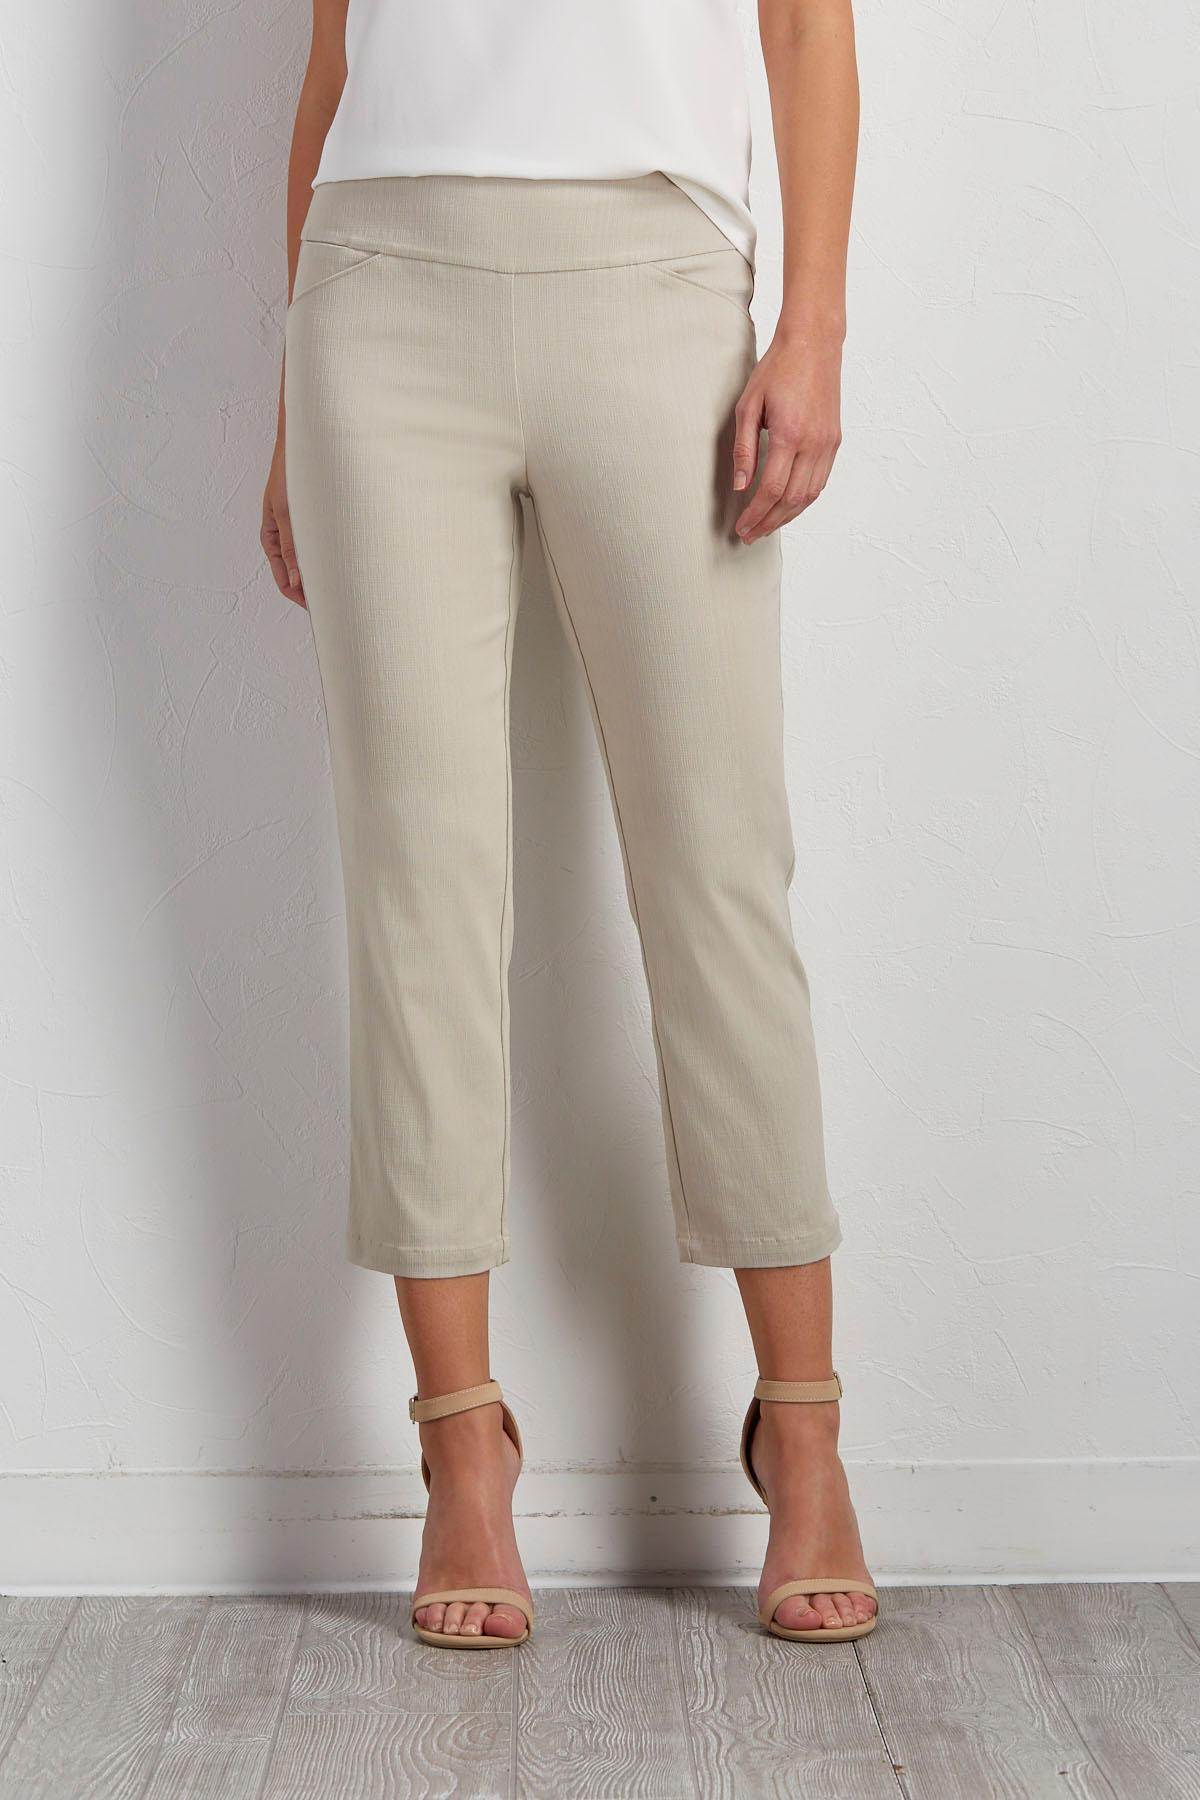 Crosshatch Textured Crop Pants